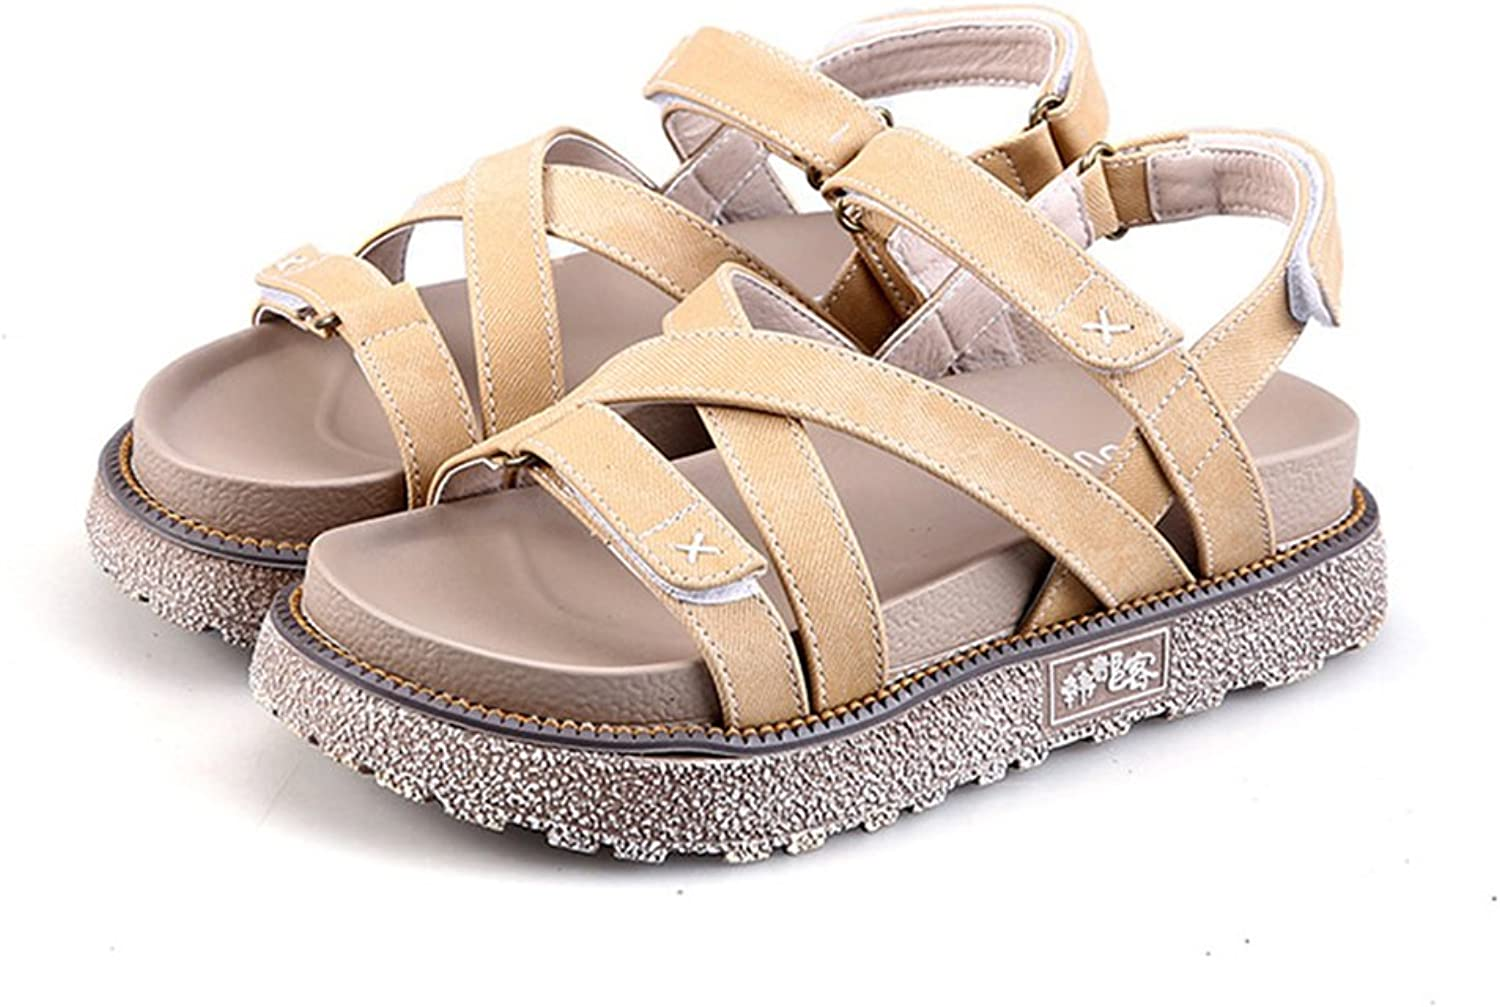 Tuoup Women's Fashion Leather Sandles Anti-Skid Lady Sandals